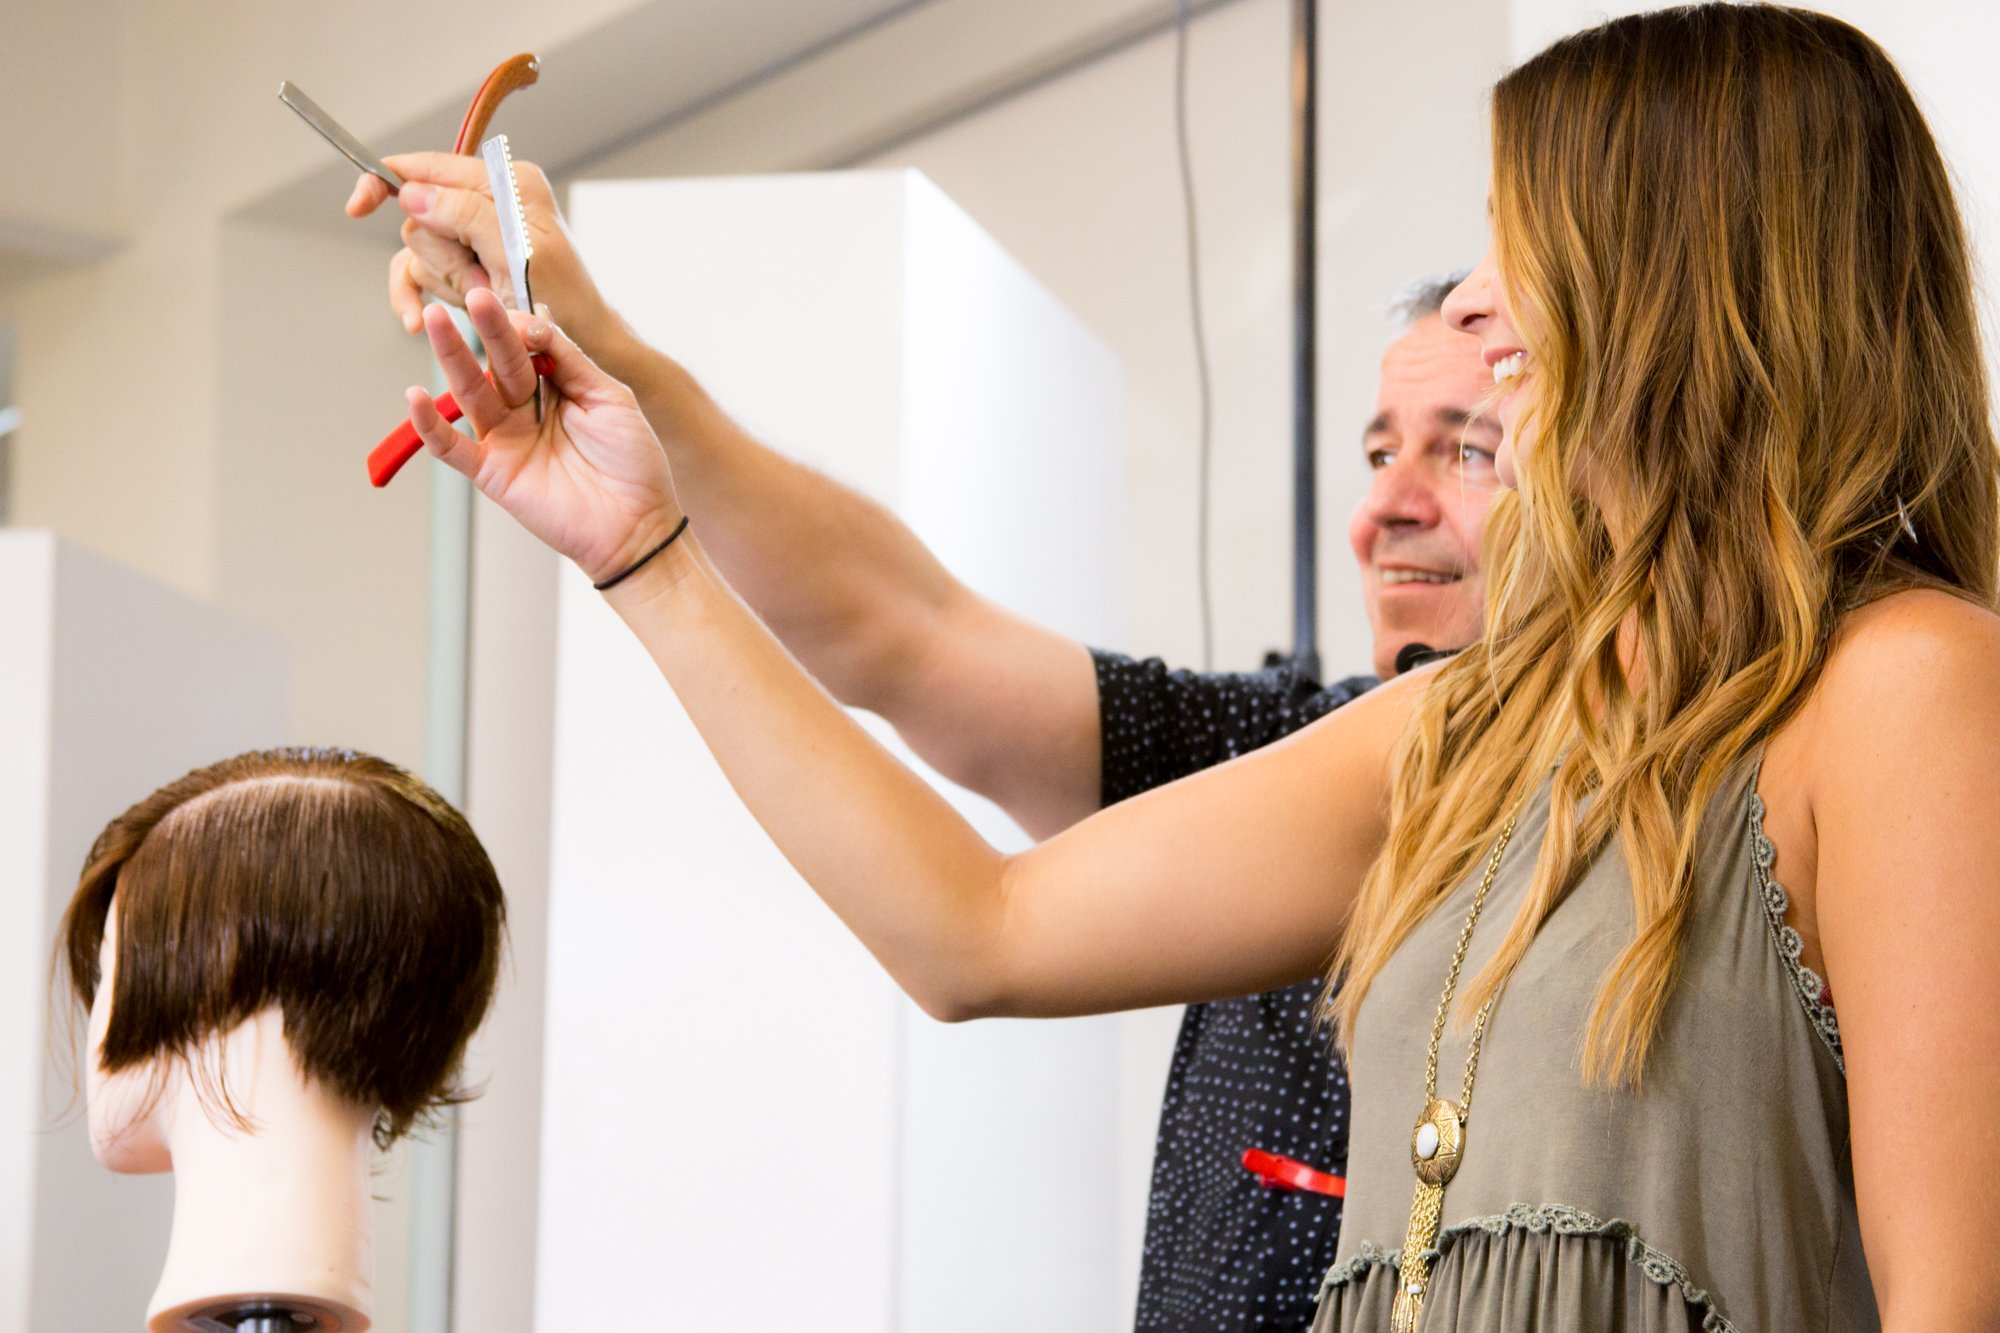 During an educational event at Club Intrigue, Nick Arrojo launched a Learn Together segment, inviting up one volunteer for a razor-cutting demonstration.